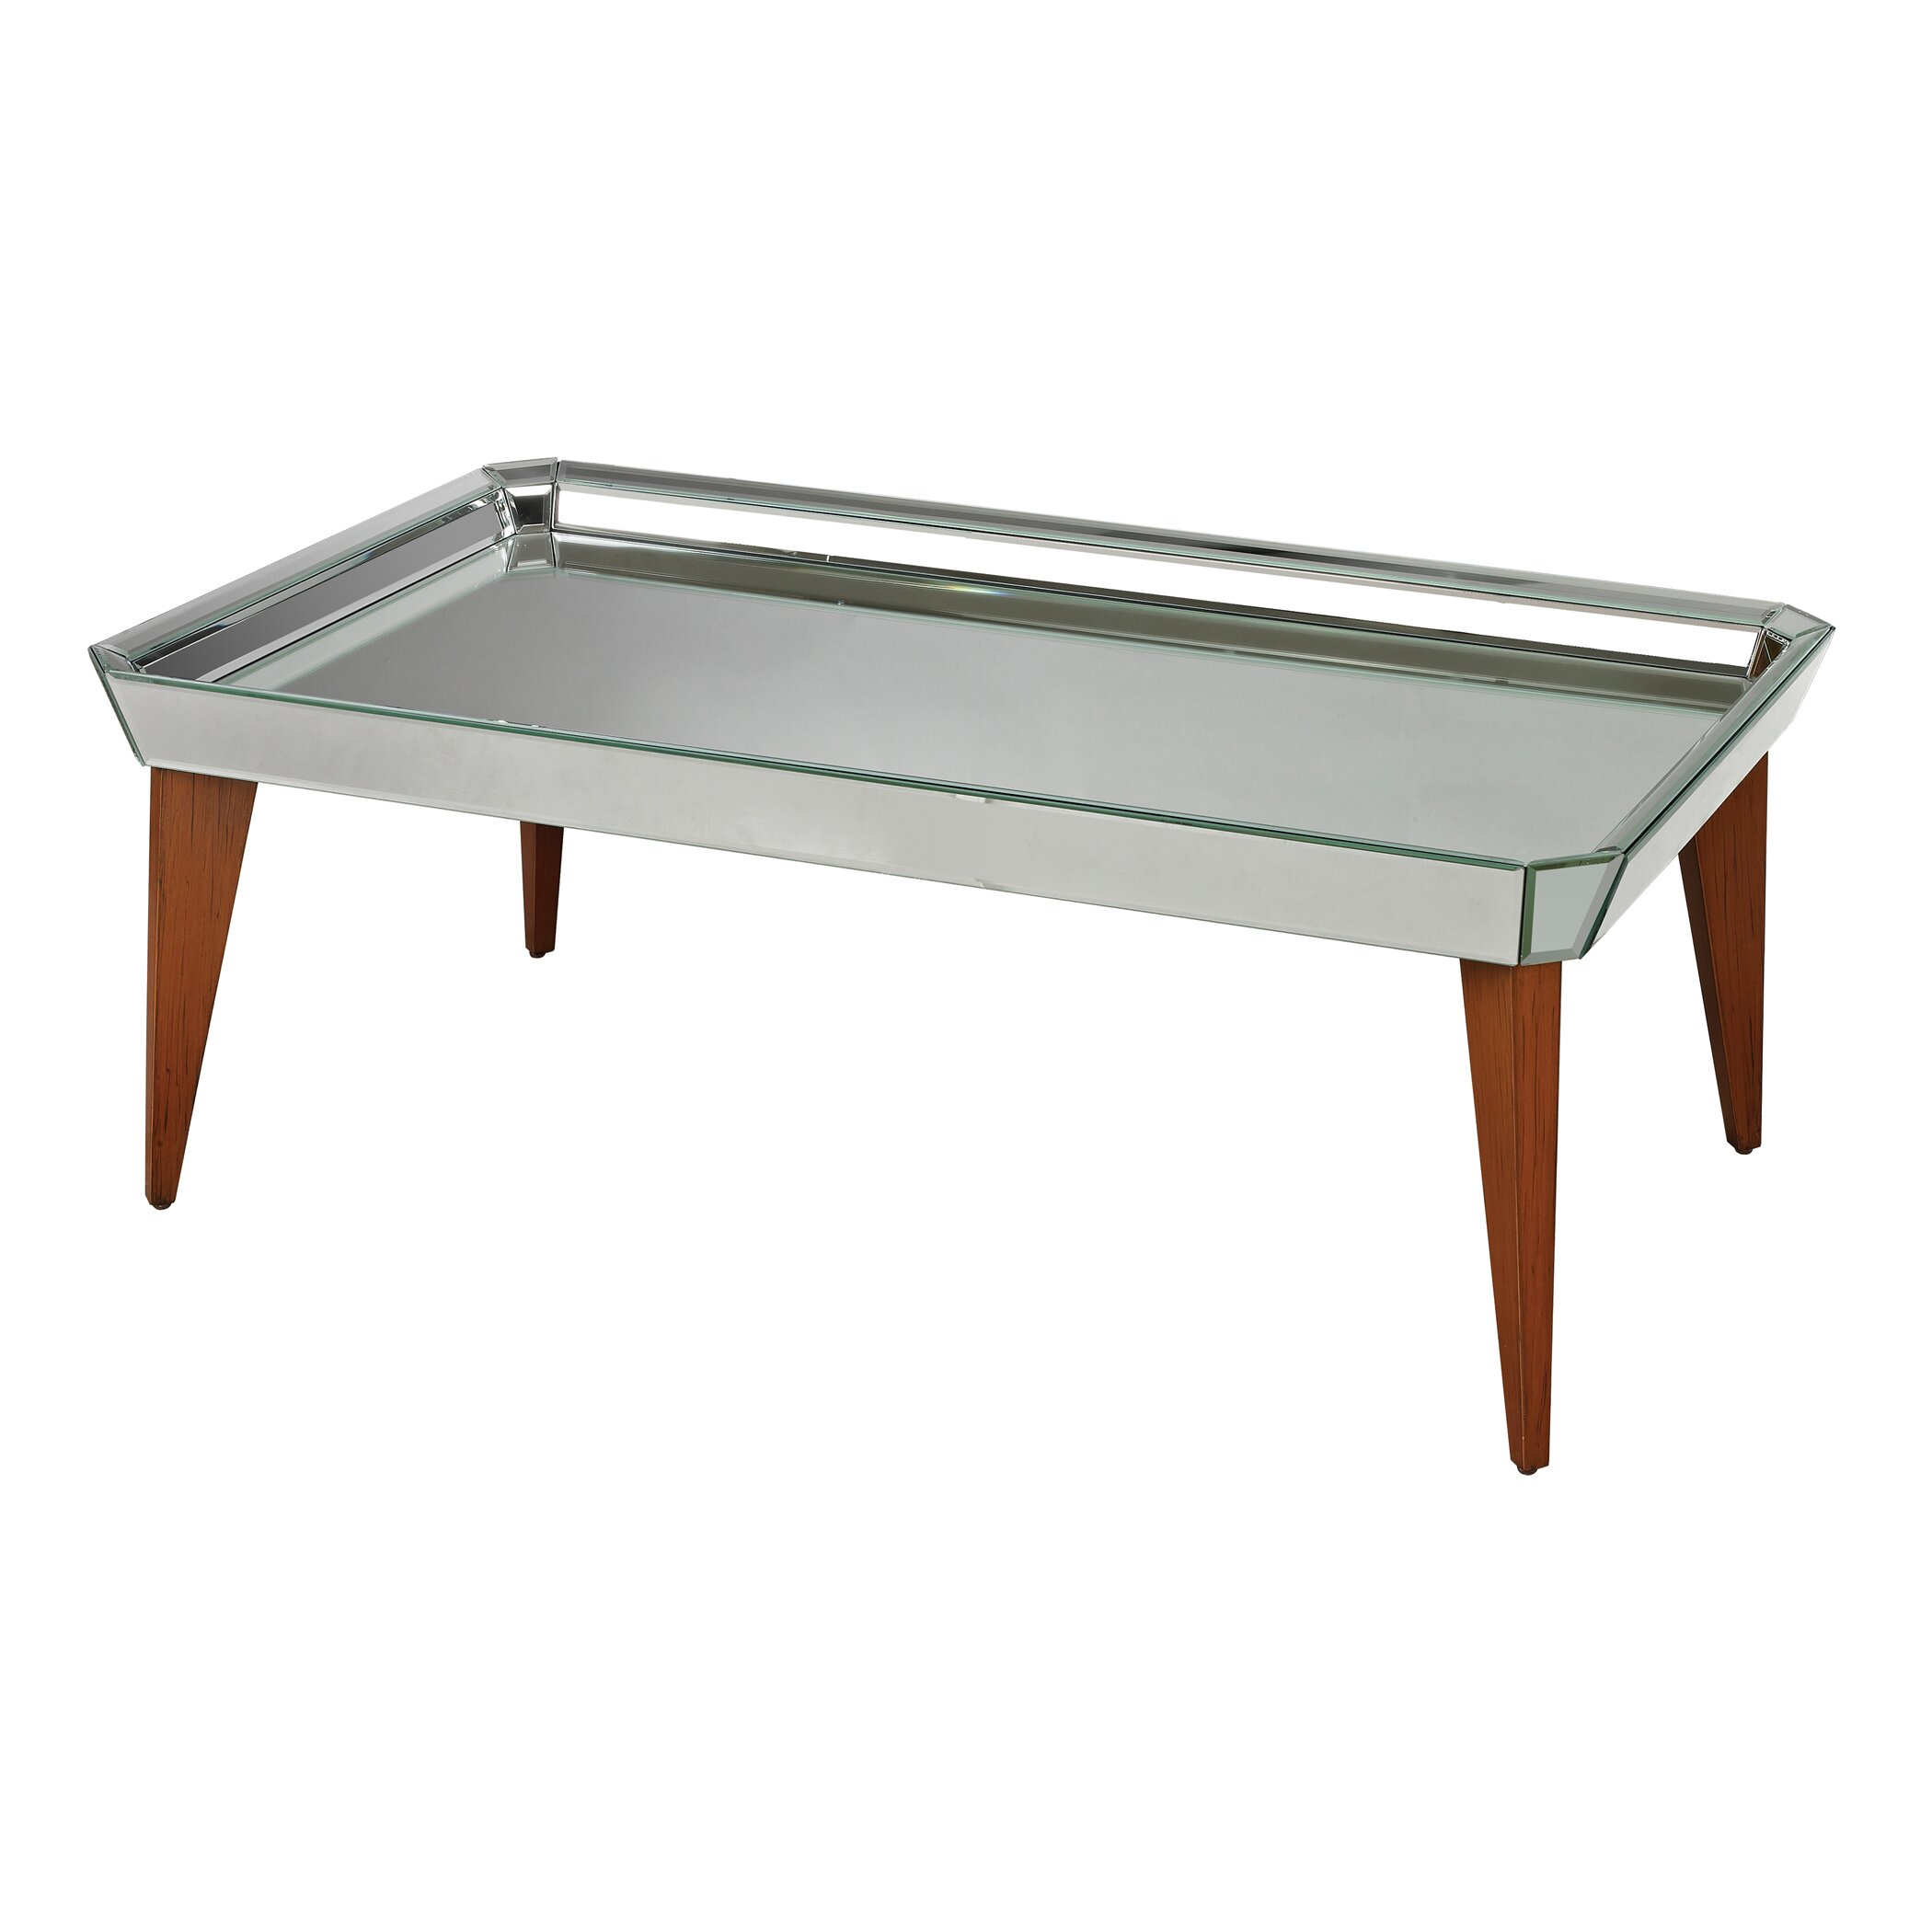 Rushbrook mid century mirrored coffee table wayfair for Wayfair mid century coffee table